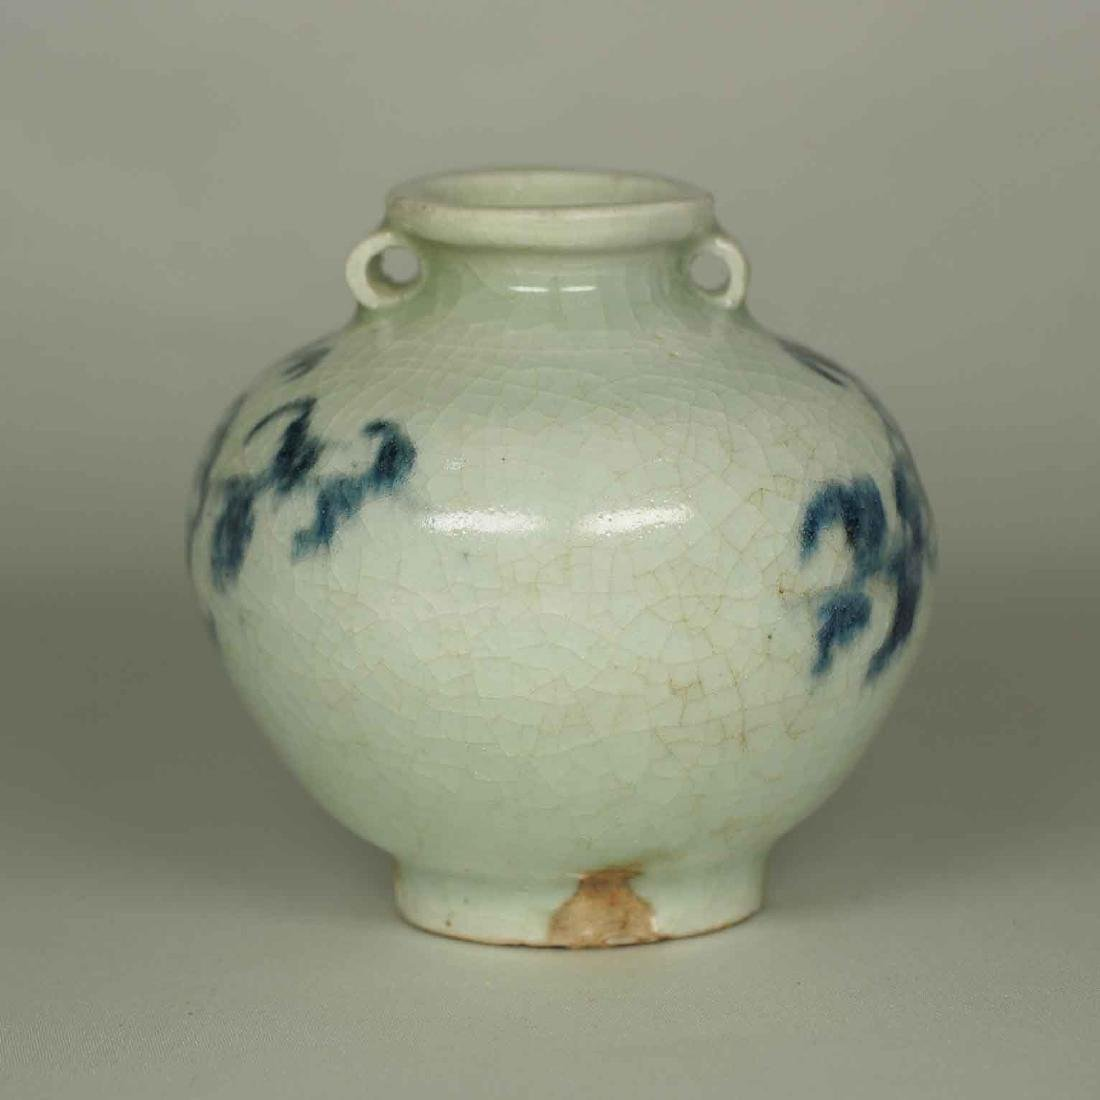 Jarlet with Chrysanthemum Flower, Yuan Dynasty - 4